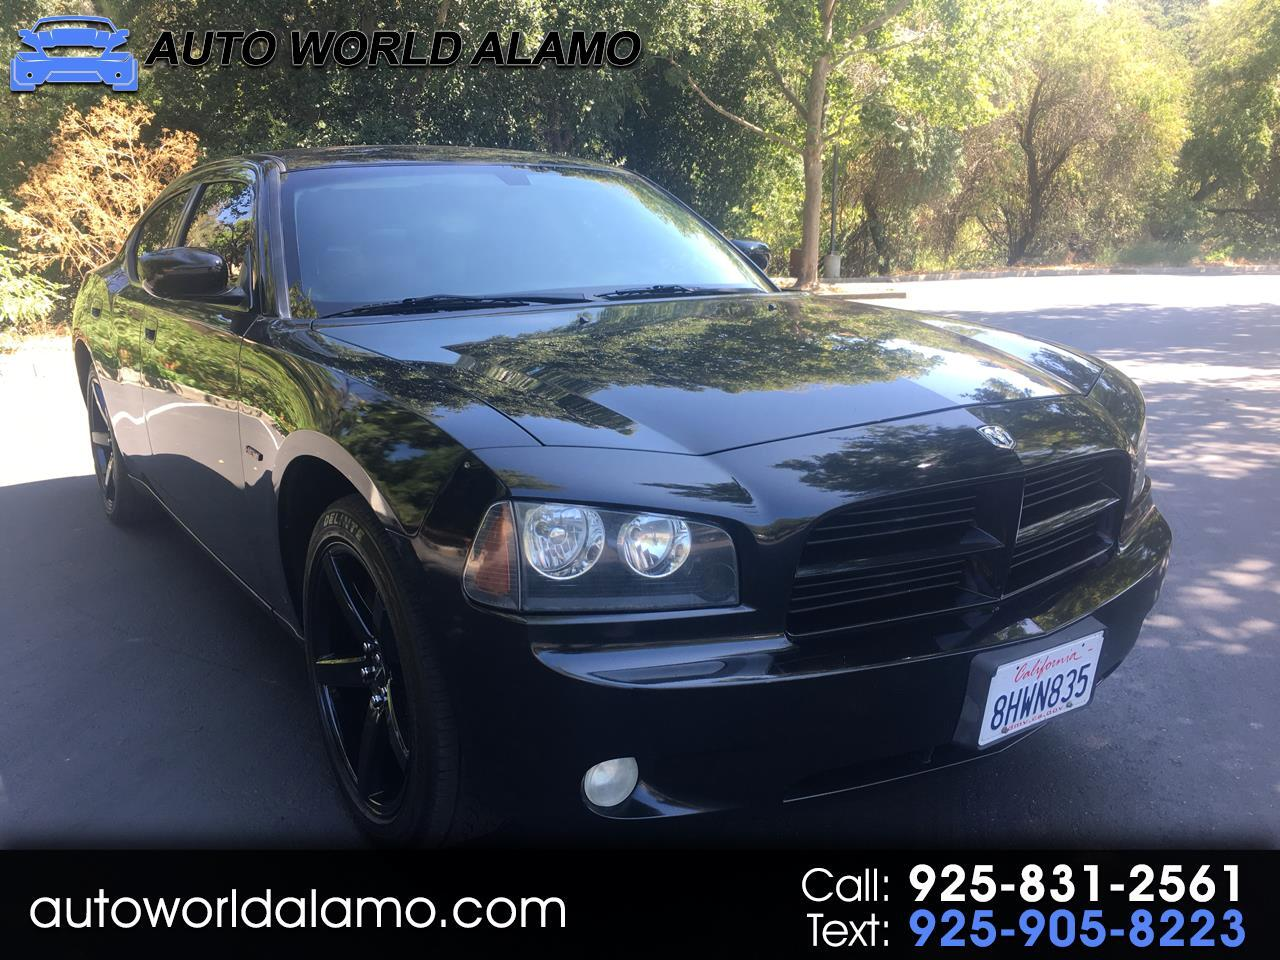 2009 Dodge Charger 4dr Sdn 5-Spd Auto R/T RWD